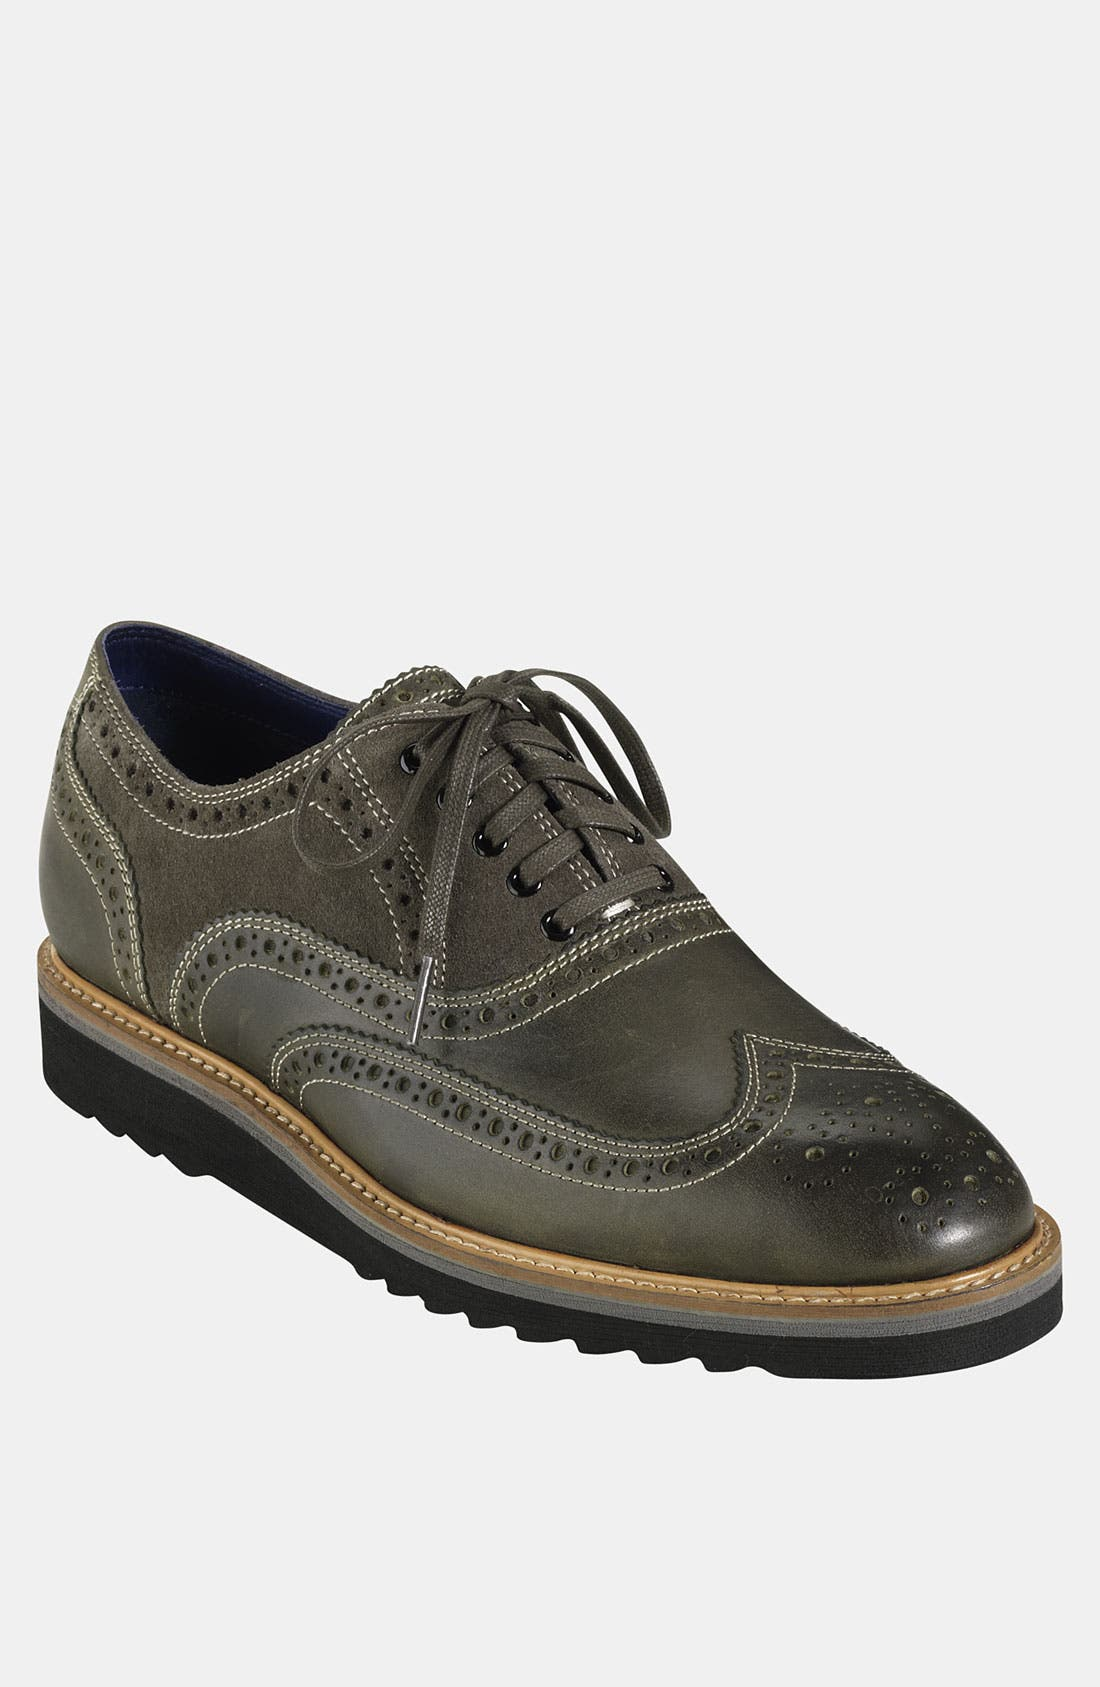 Alternate Image 1 Selected - Cole Haan 'Air Morris' Casual Wingtip